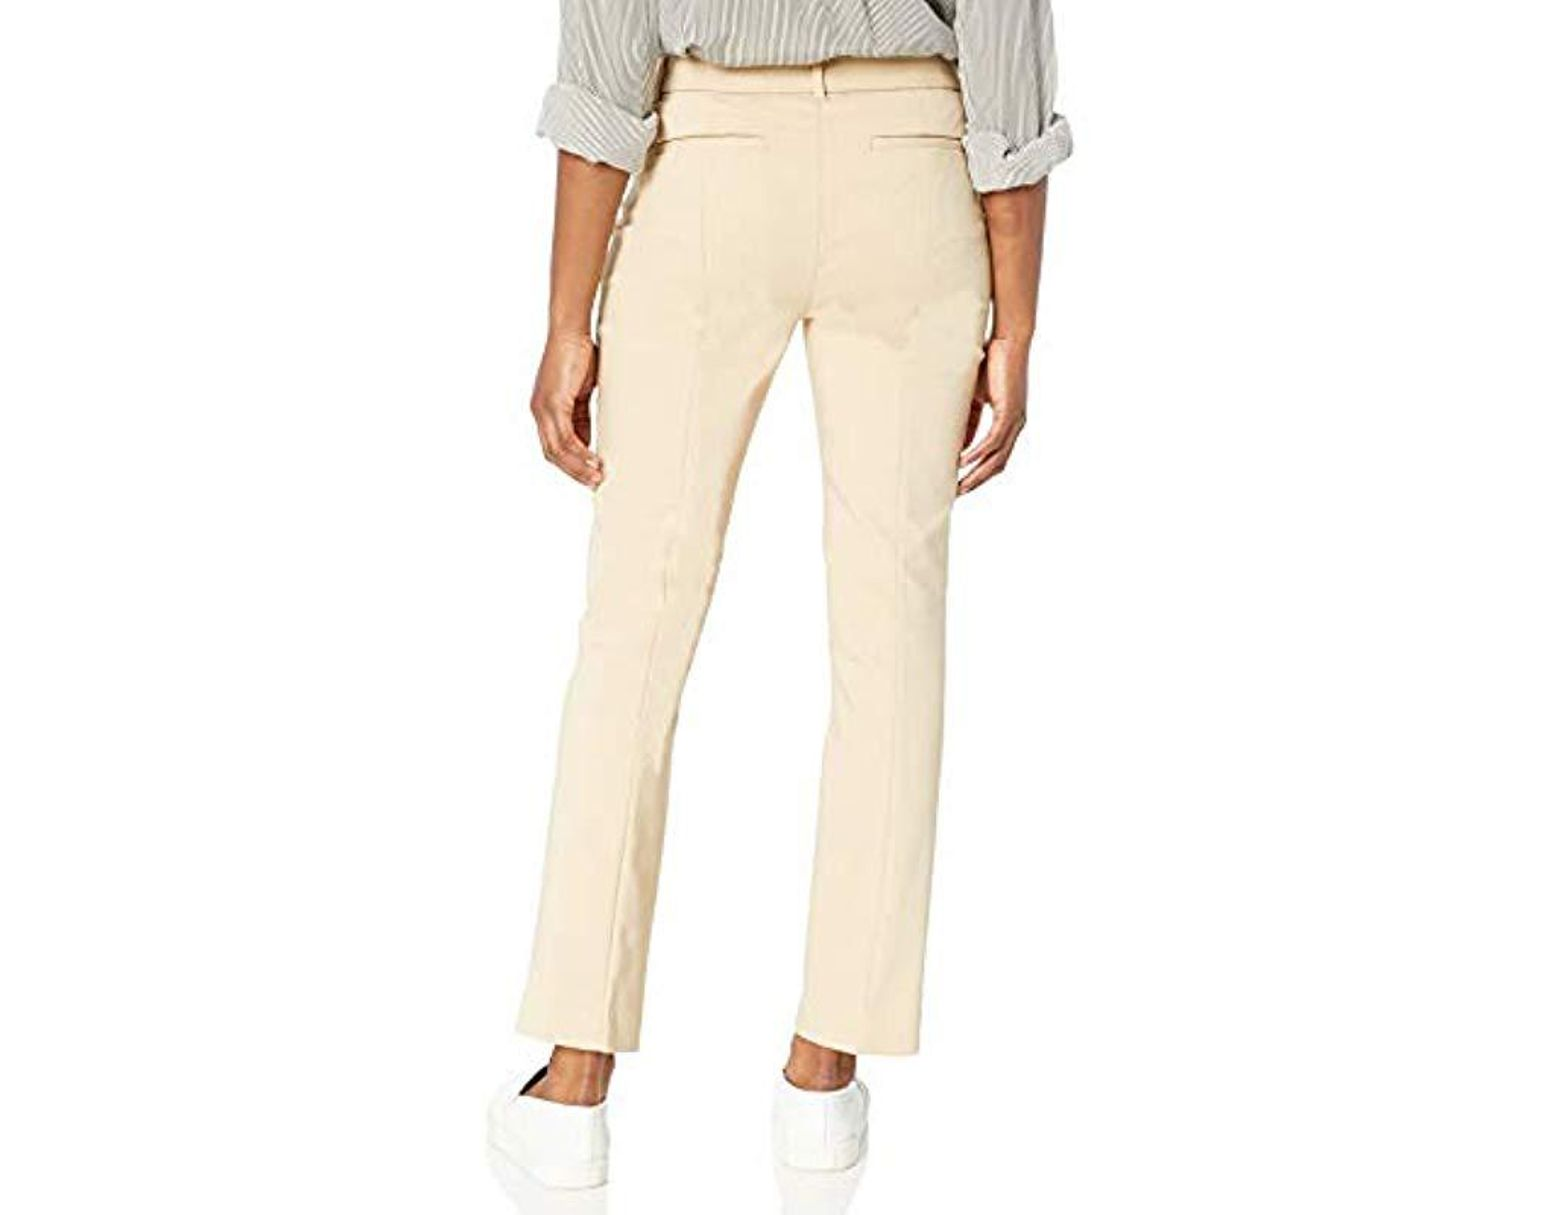 6d9eb447d Rafaella Petite Satin Twill Dress Pant in Natural - Lyst